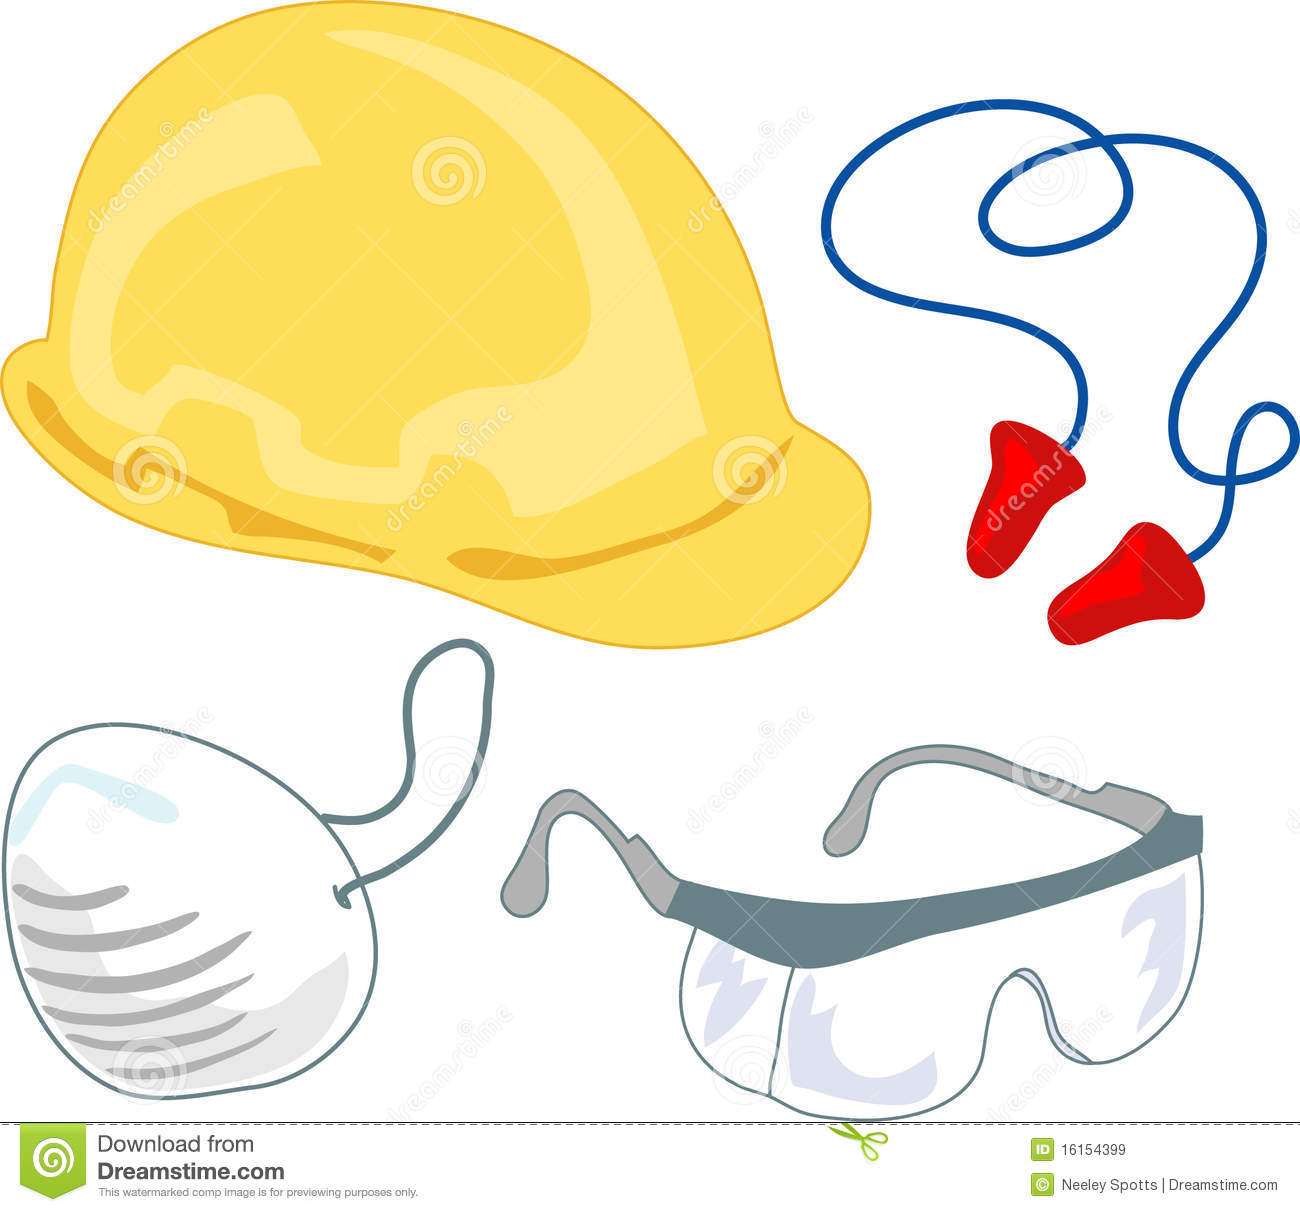 Safety Equipment Clipart.